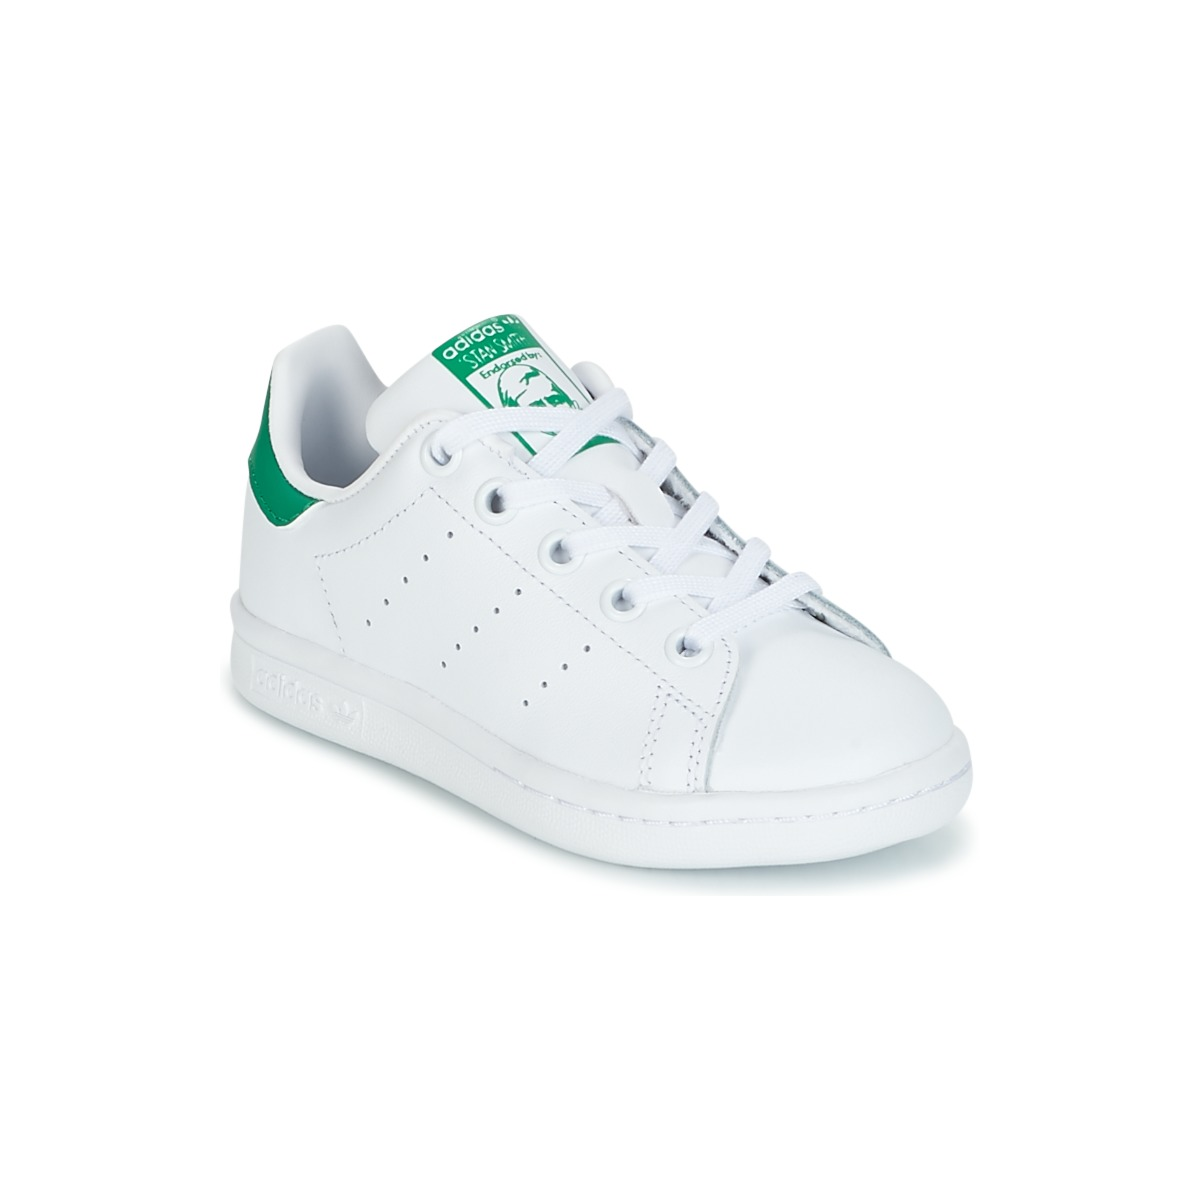 new product 614a9 b3db8 SNEAKERS. Adidas